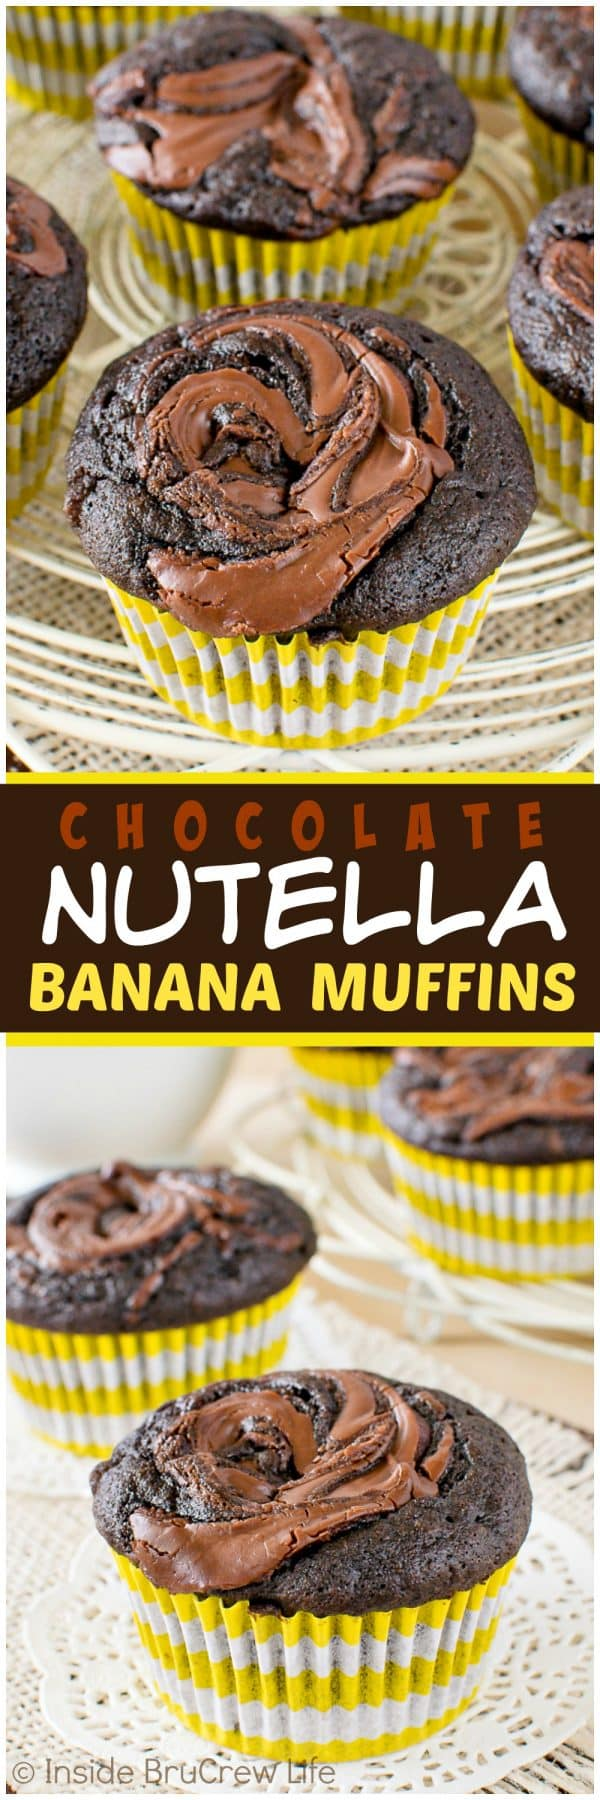 Chocolate Nutella Banana Muffins - this easy breakfast muffin recipe is loaded with chocolate and banana goodness!